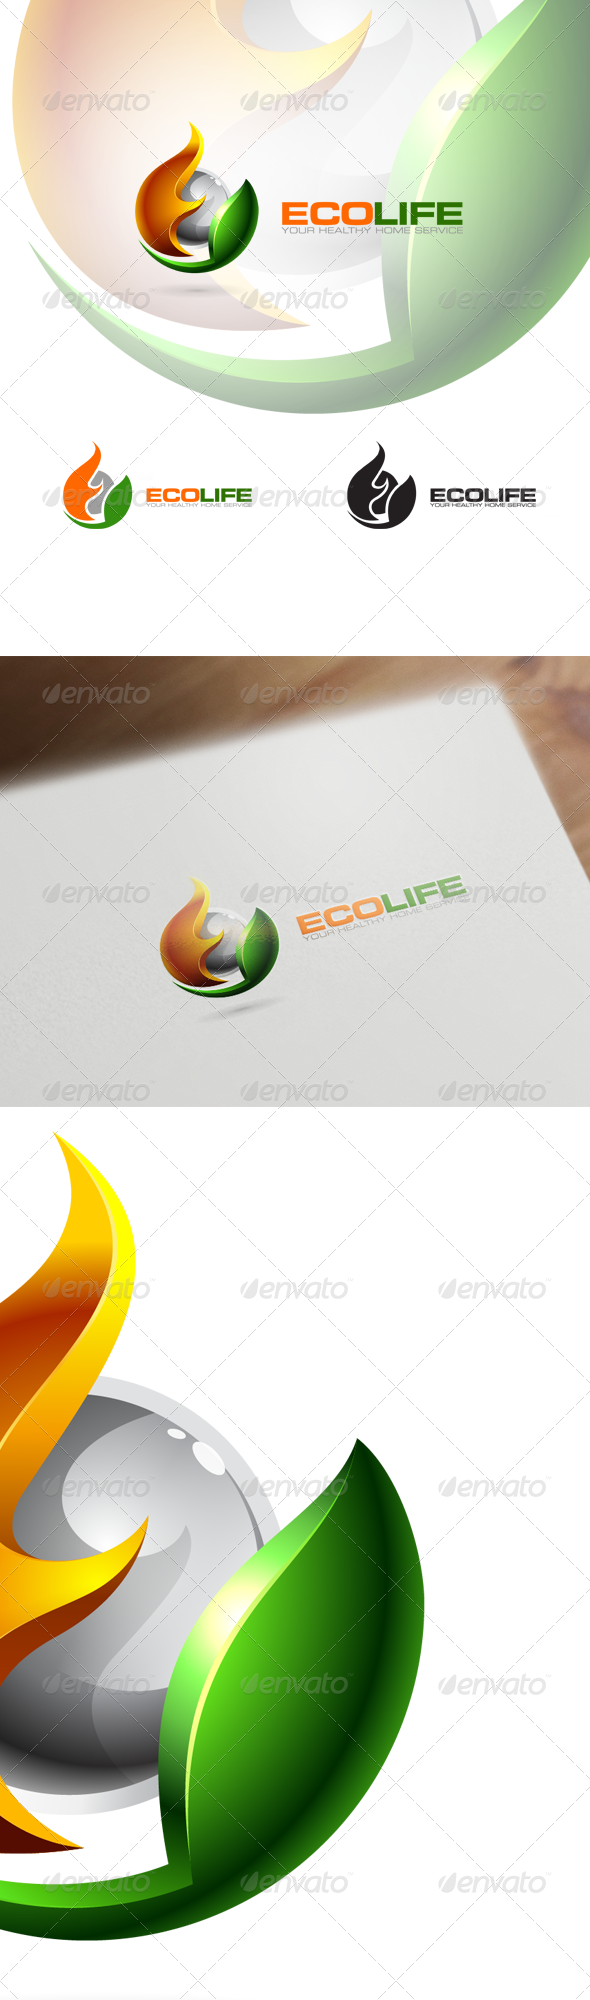 3D Eco Logo Nature Technology & Science